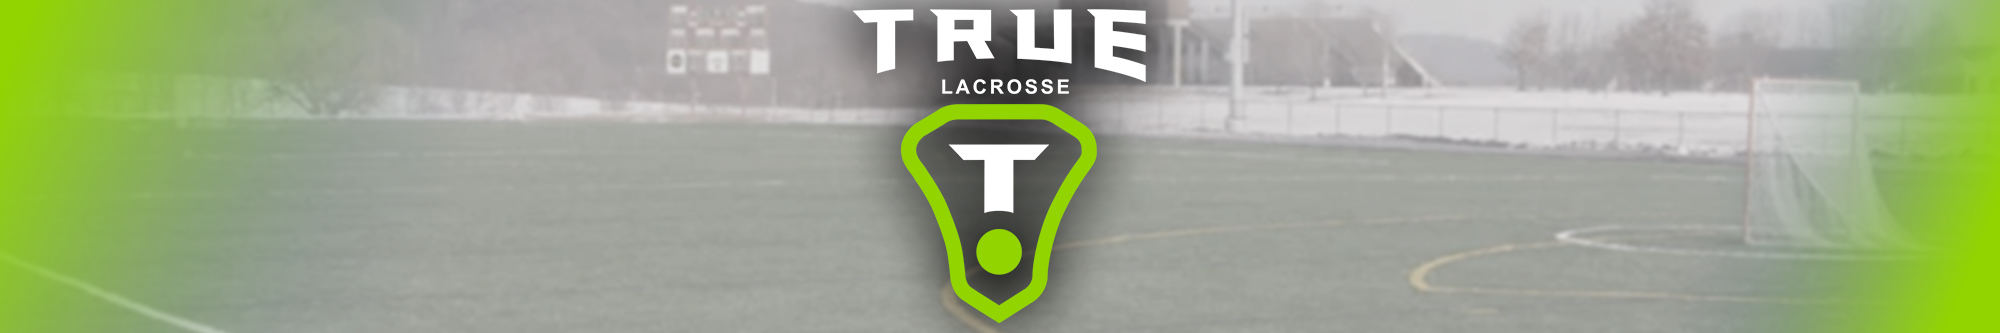 True Lacrosse Equipment Store